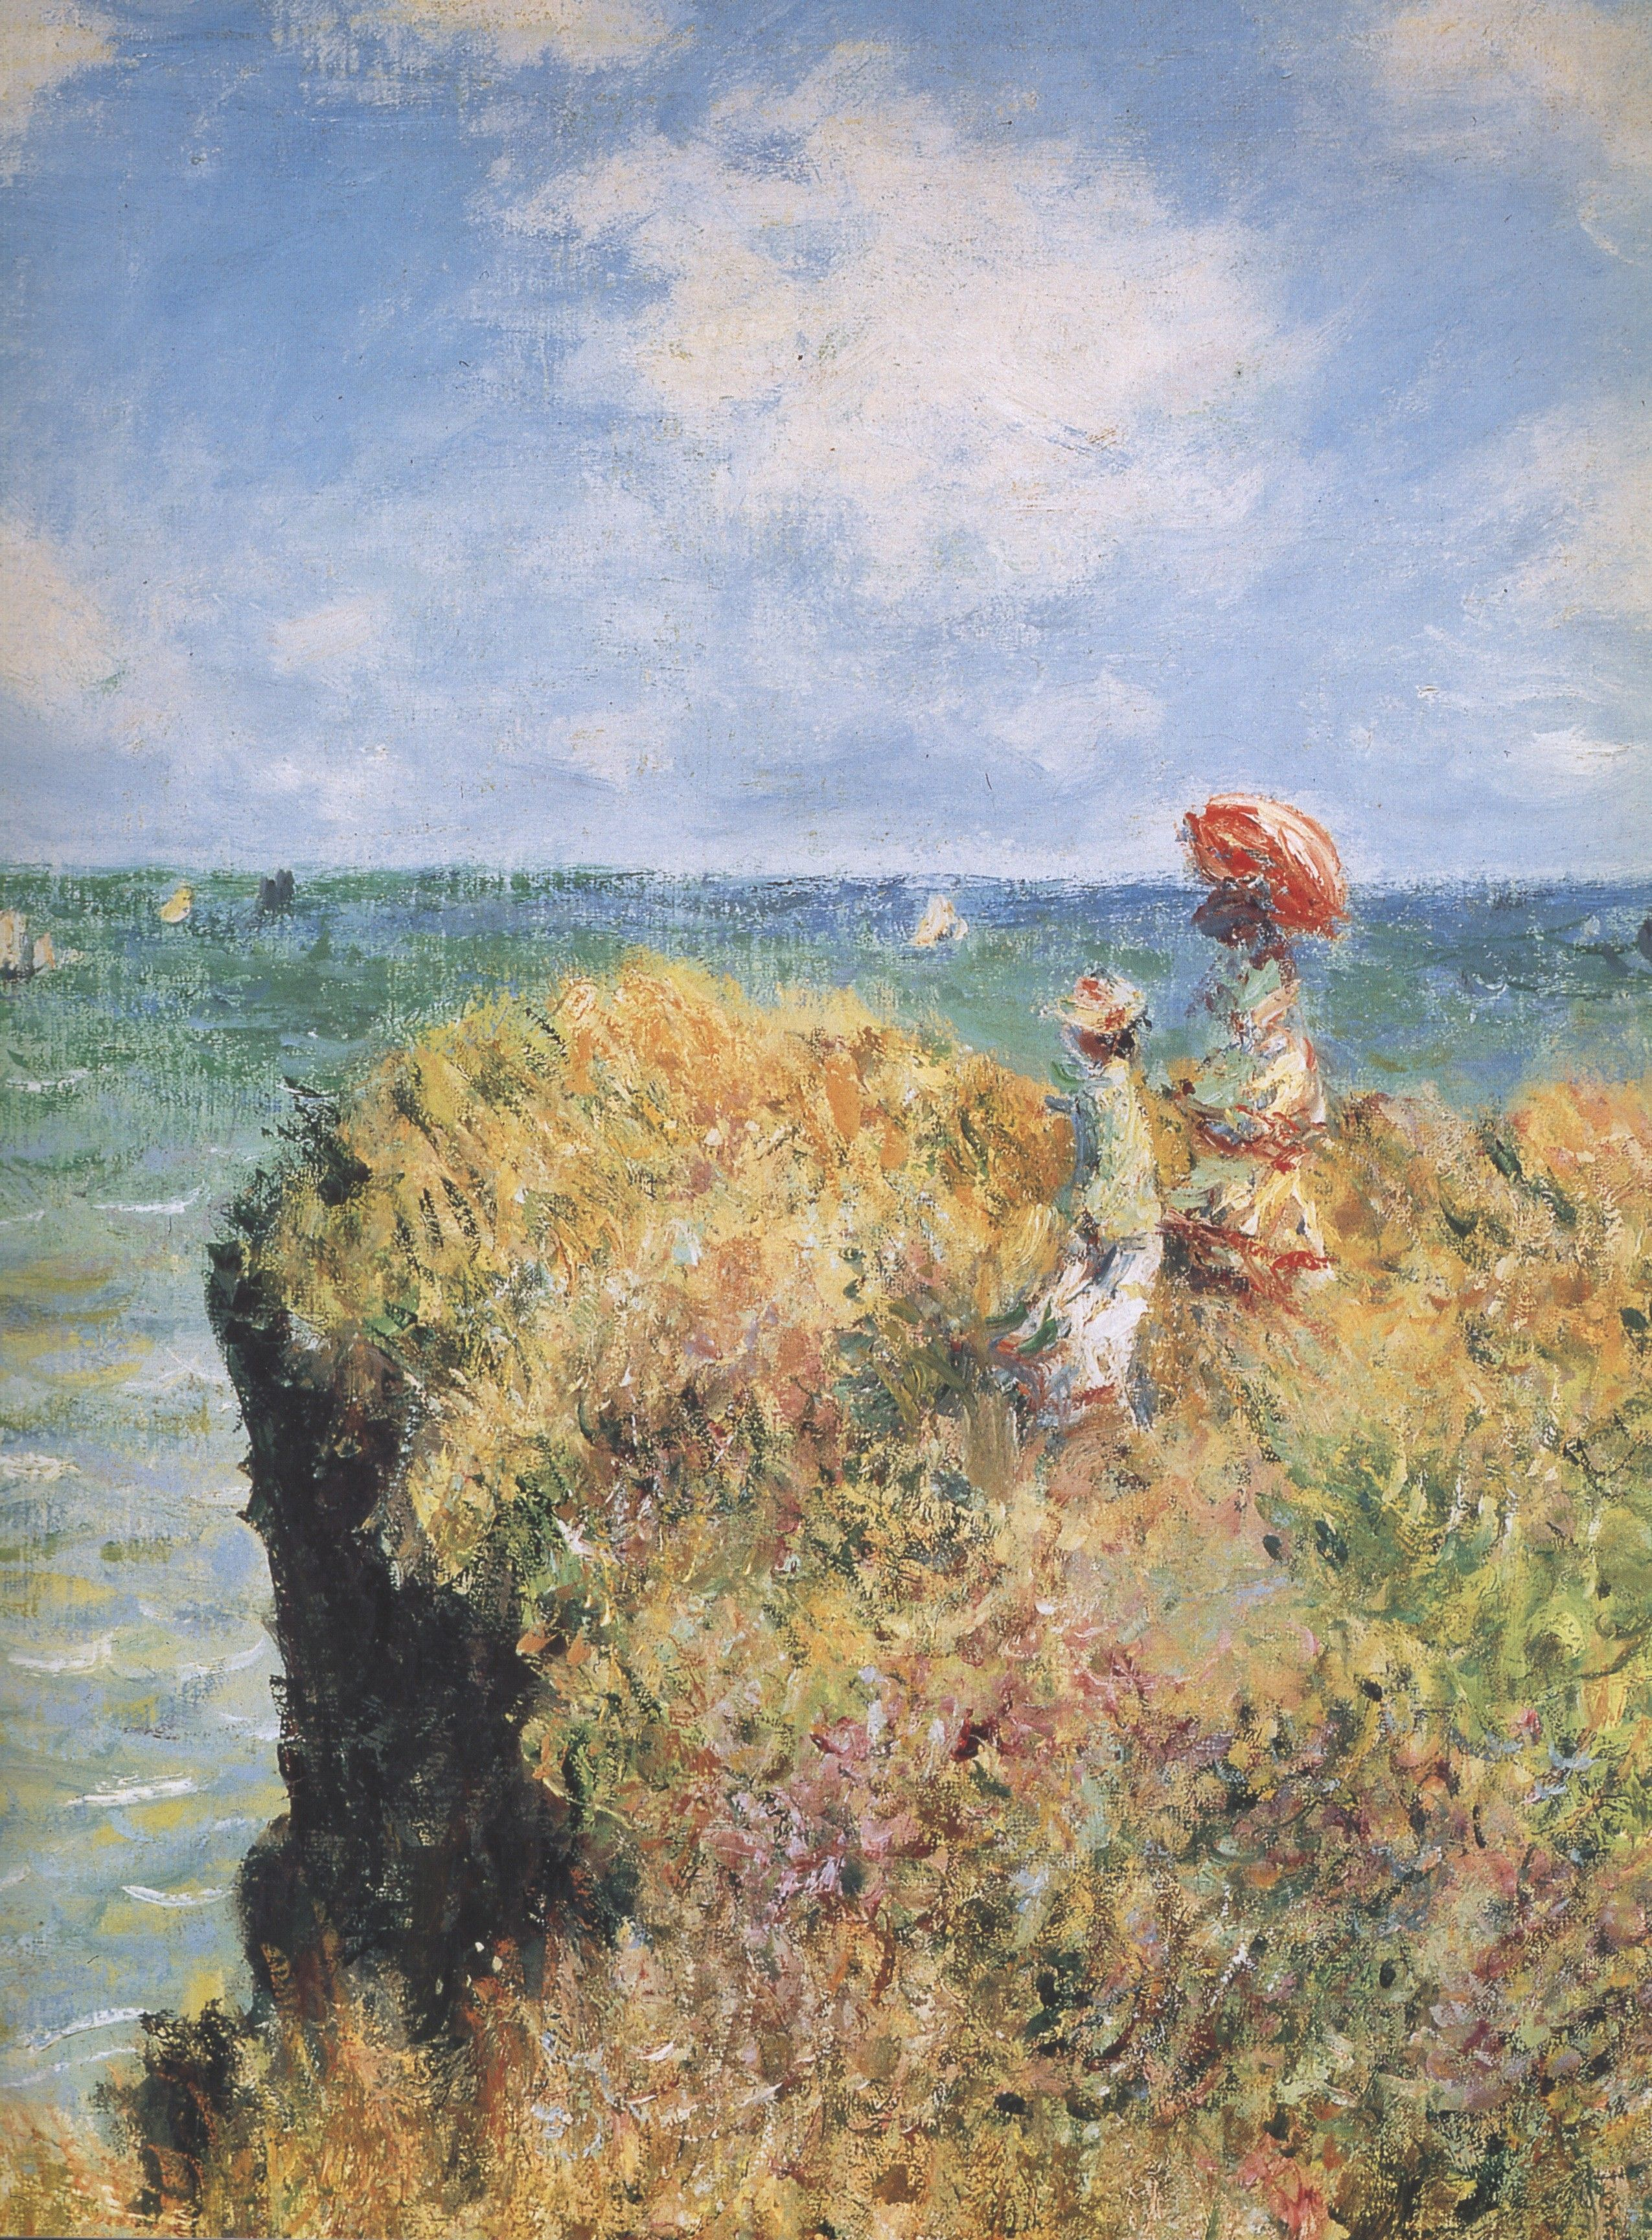 Claude Monet Painting I Love The Sky In It Reminds Me Of